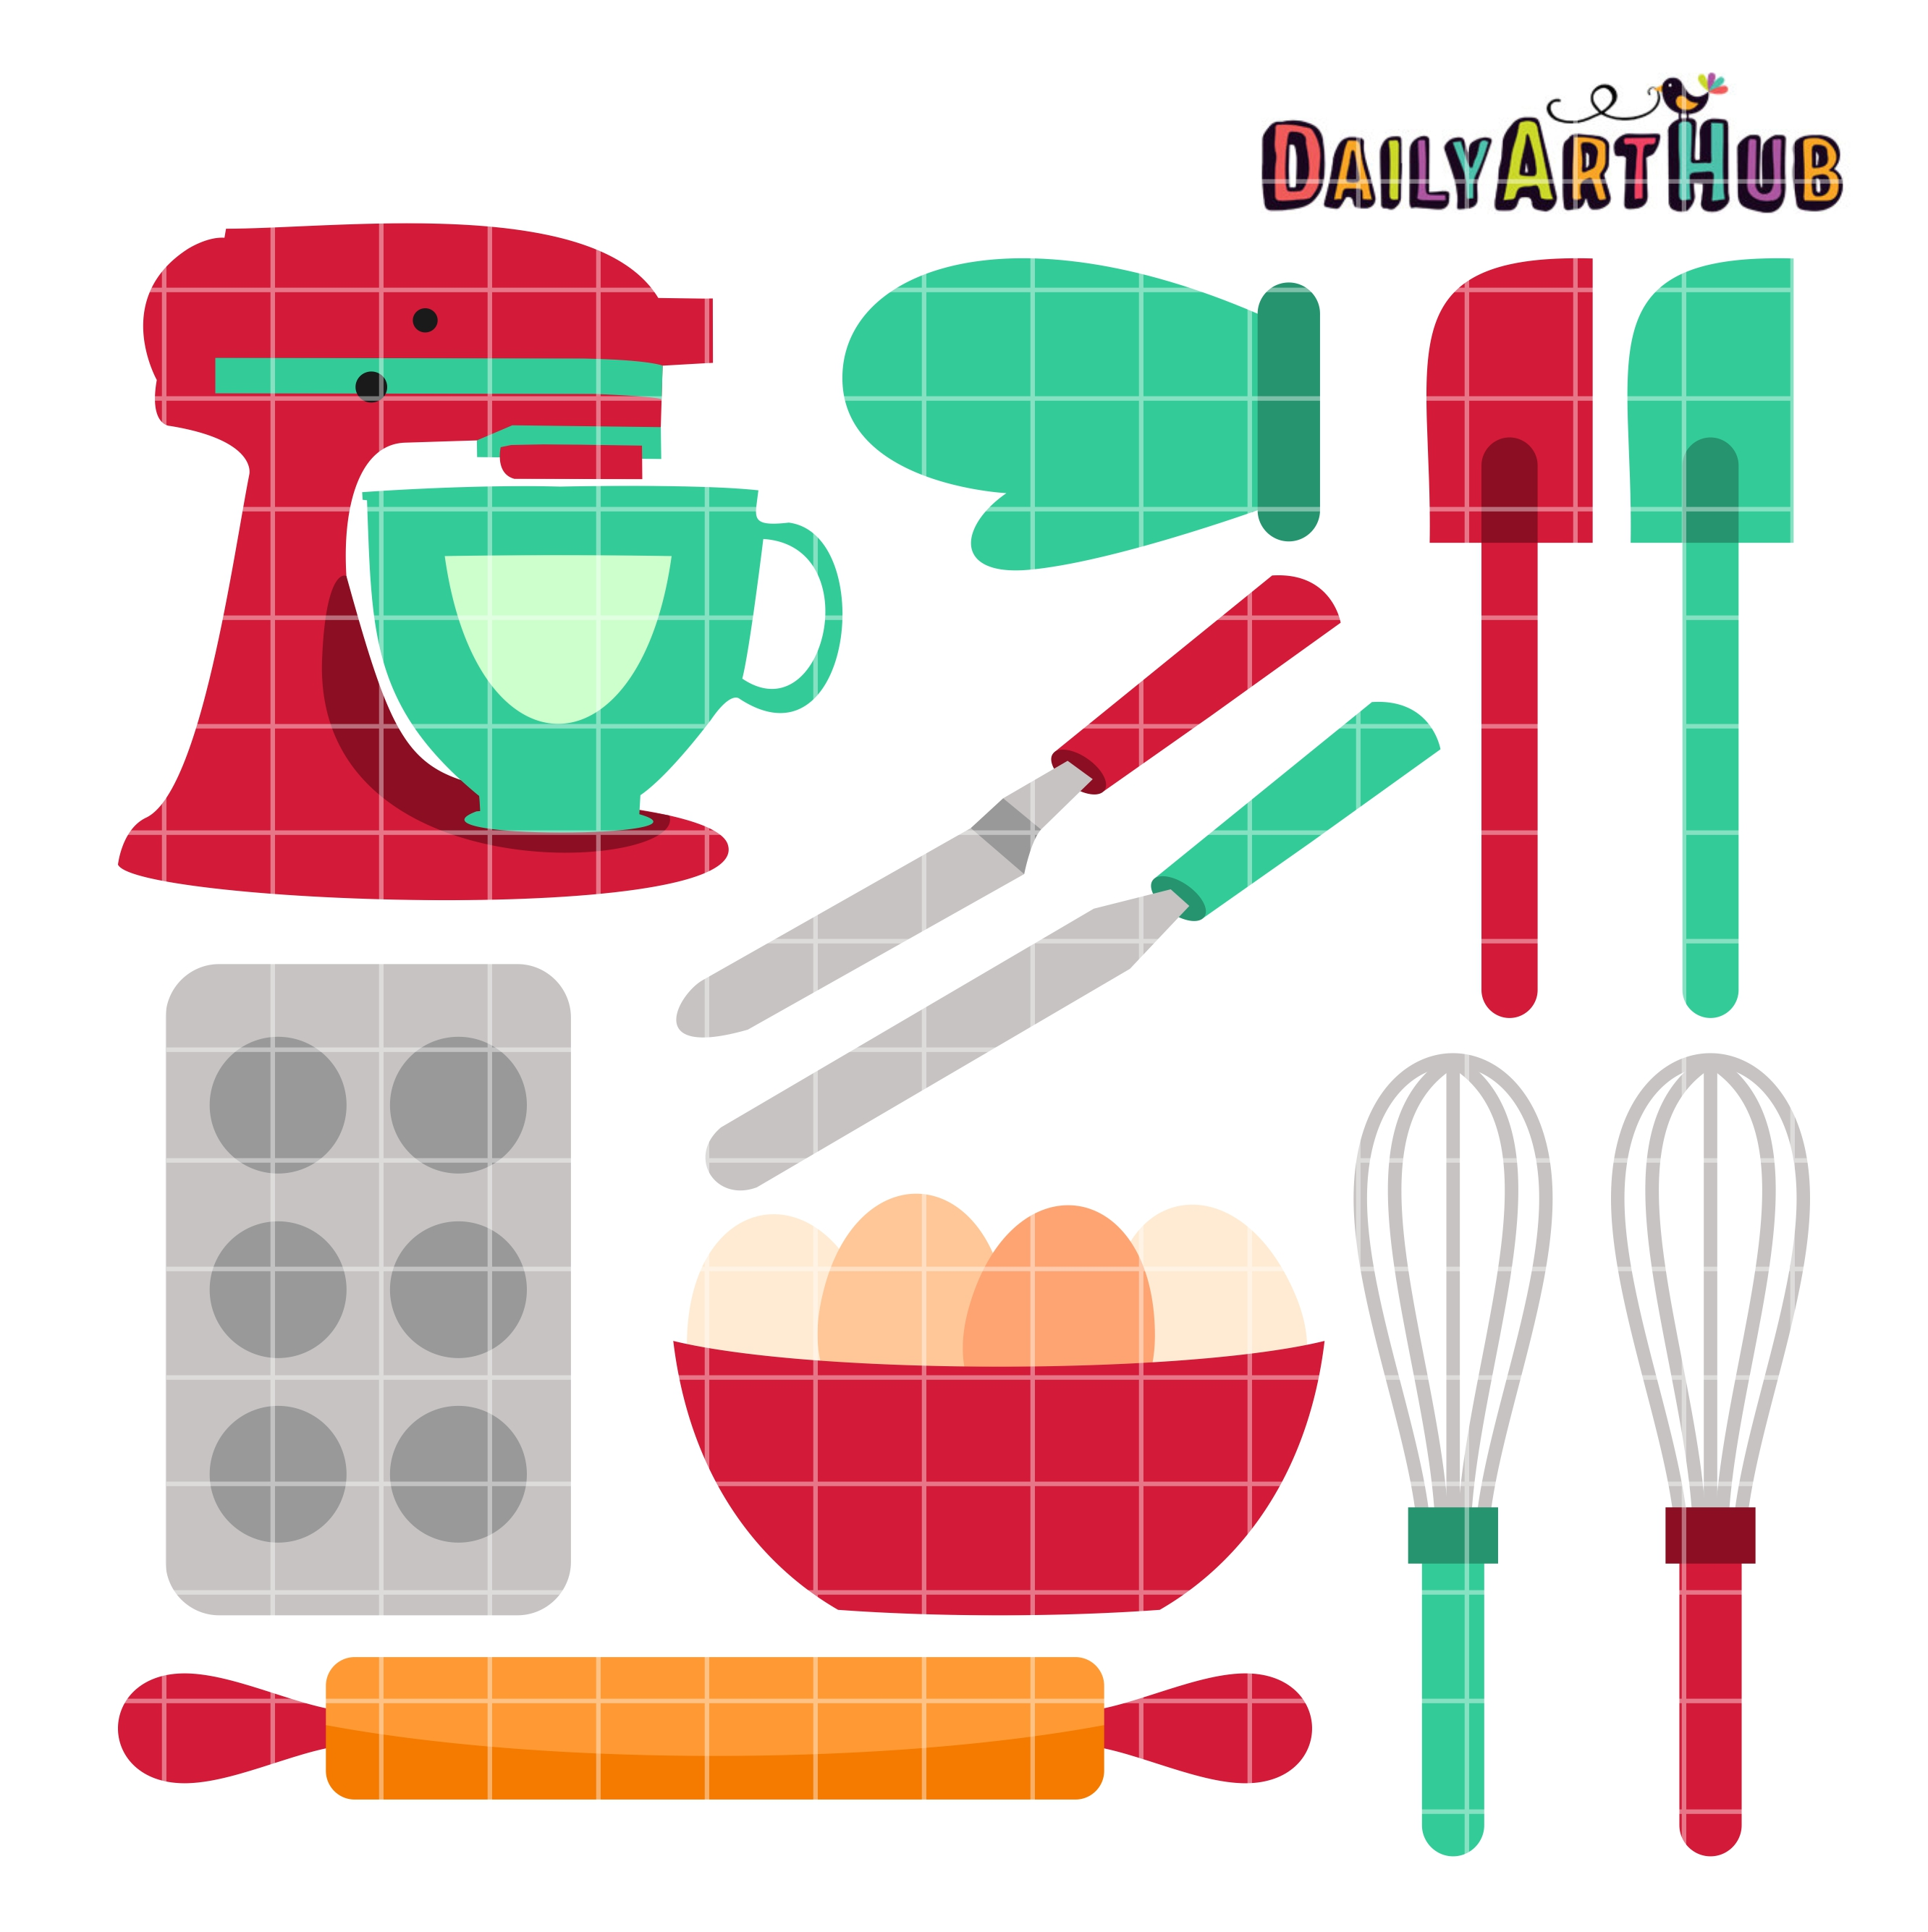 Baking clipart baking equipment. Tools clip art set